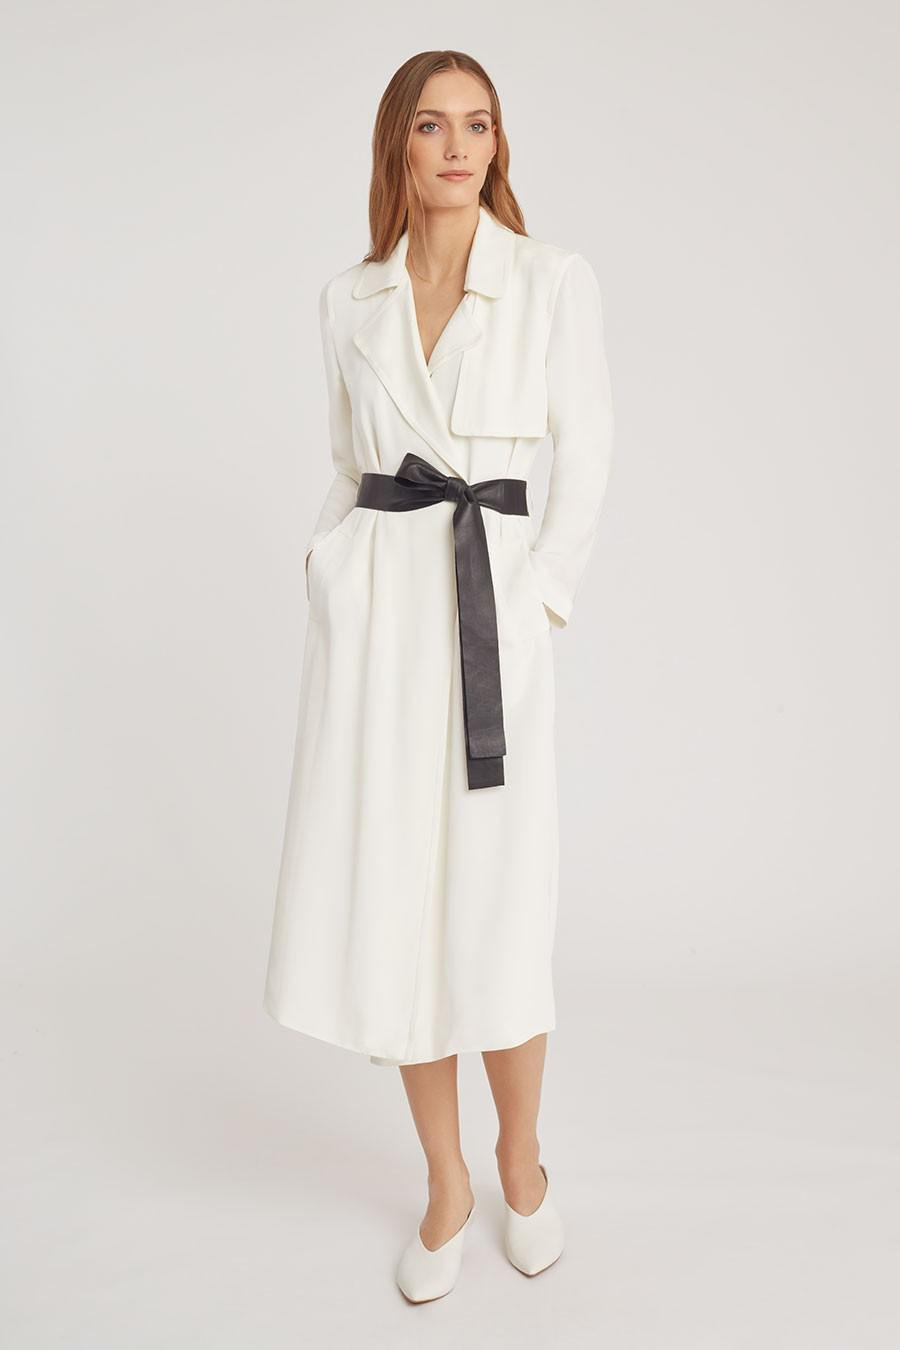 Women's Silk Classic Trench in White | Size: 3